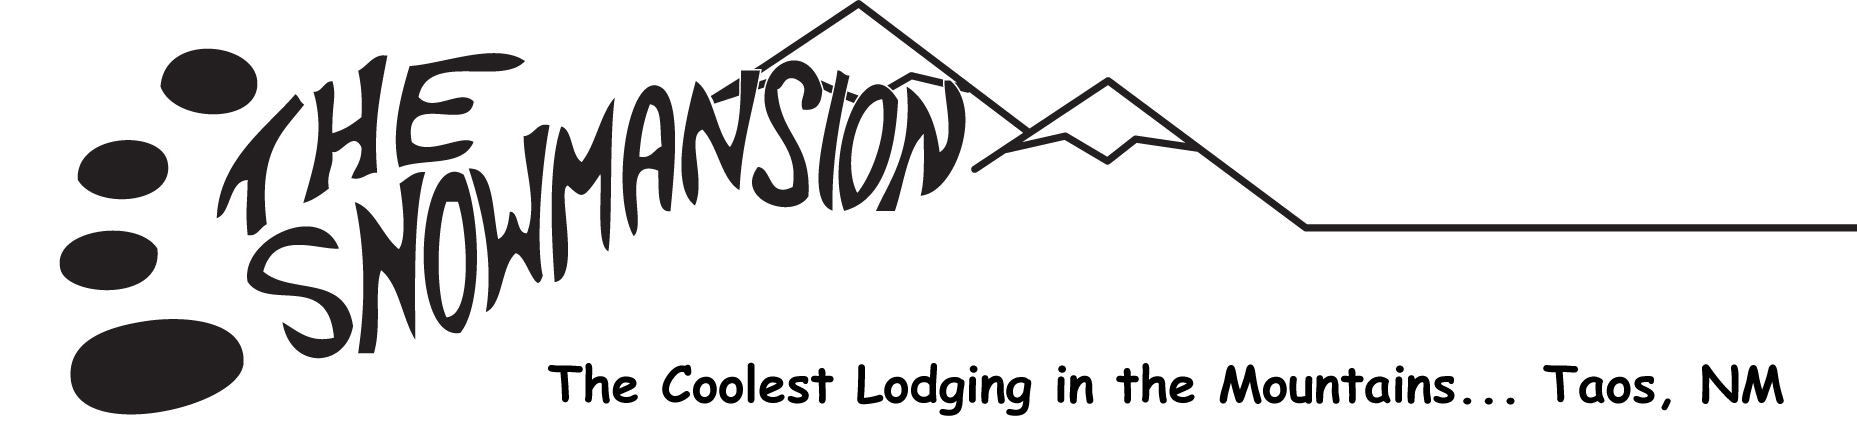 SnowMansion Taos Hostel Classic Ski Lodge Inn Suites & Campground